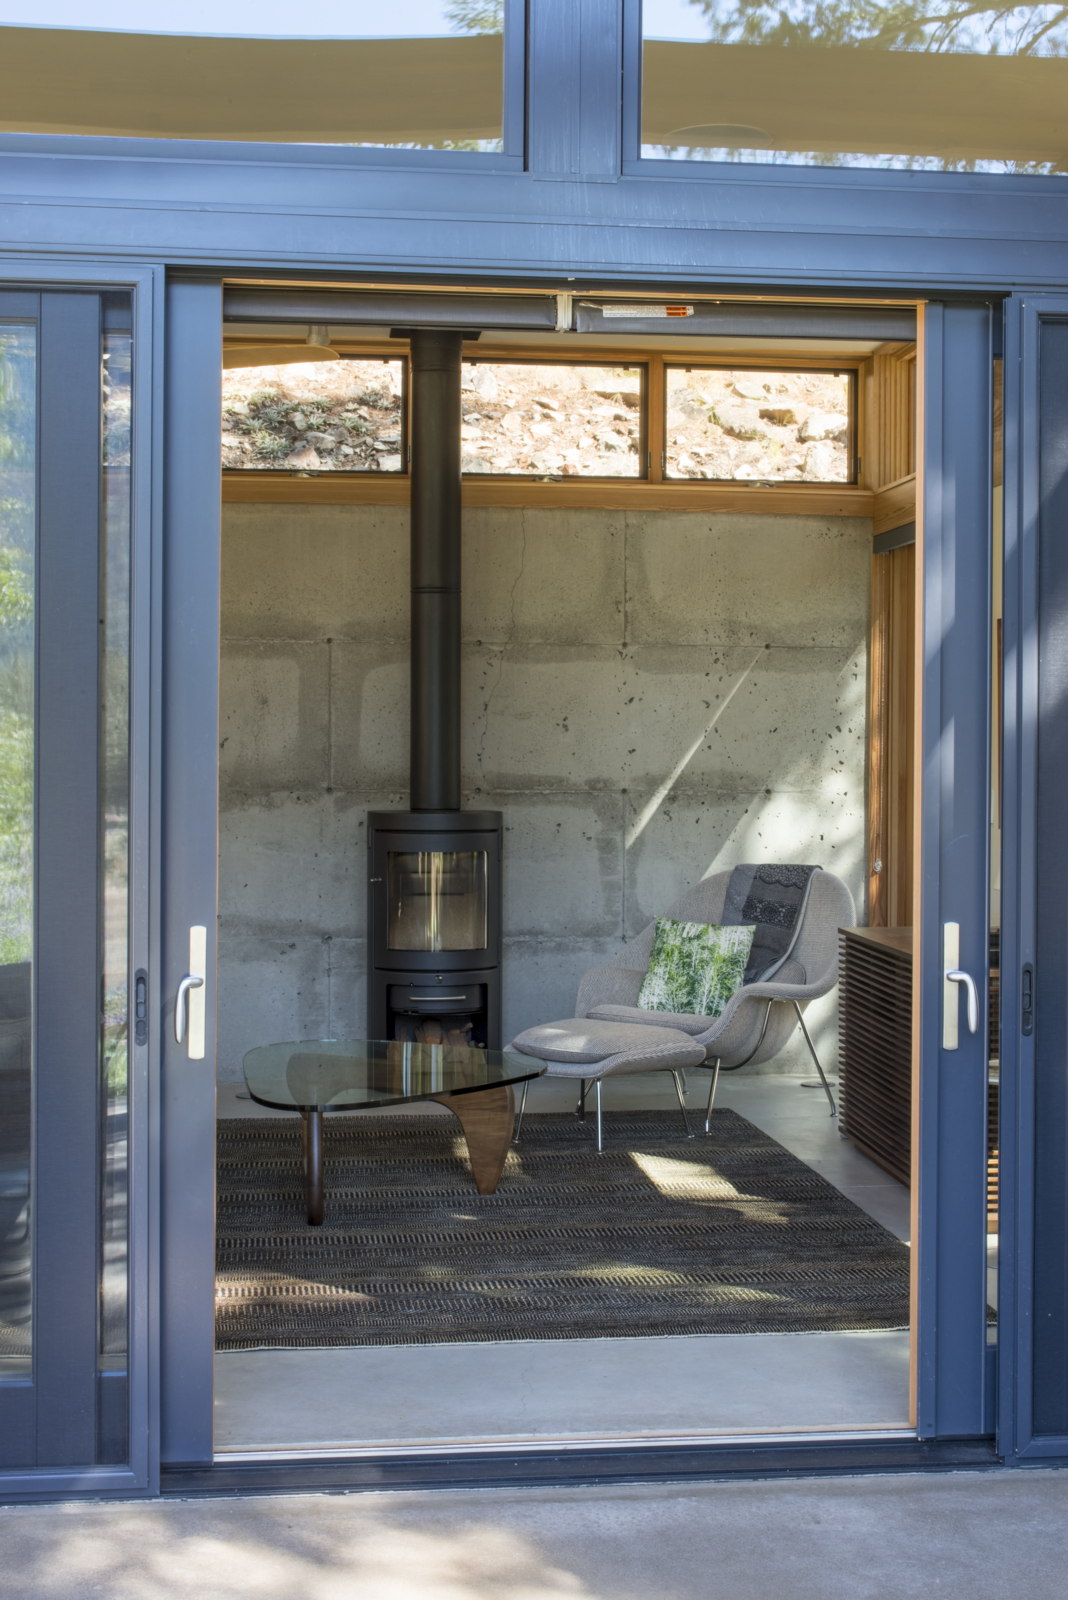 Photo 8 of 10 in A Lean Cabin in Washington Dismantles the Indoor/Outdoor Divide